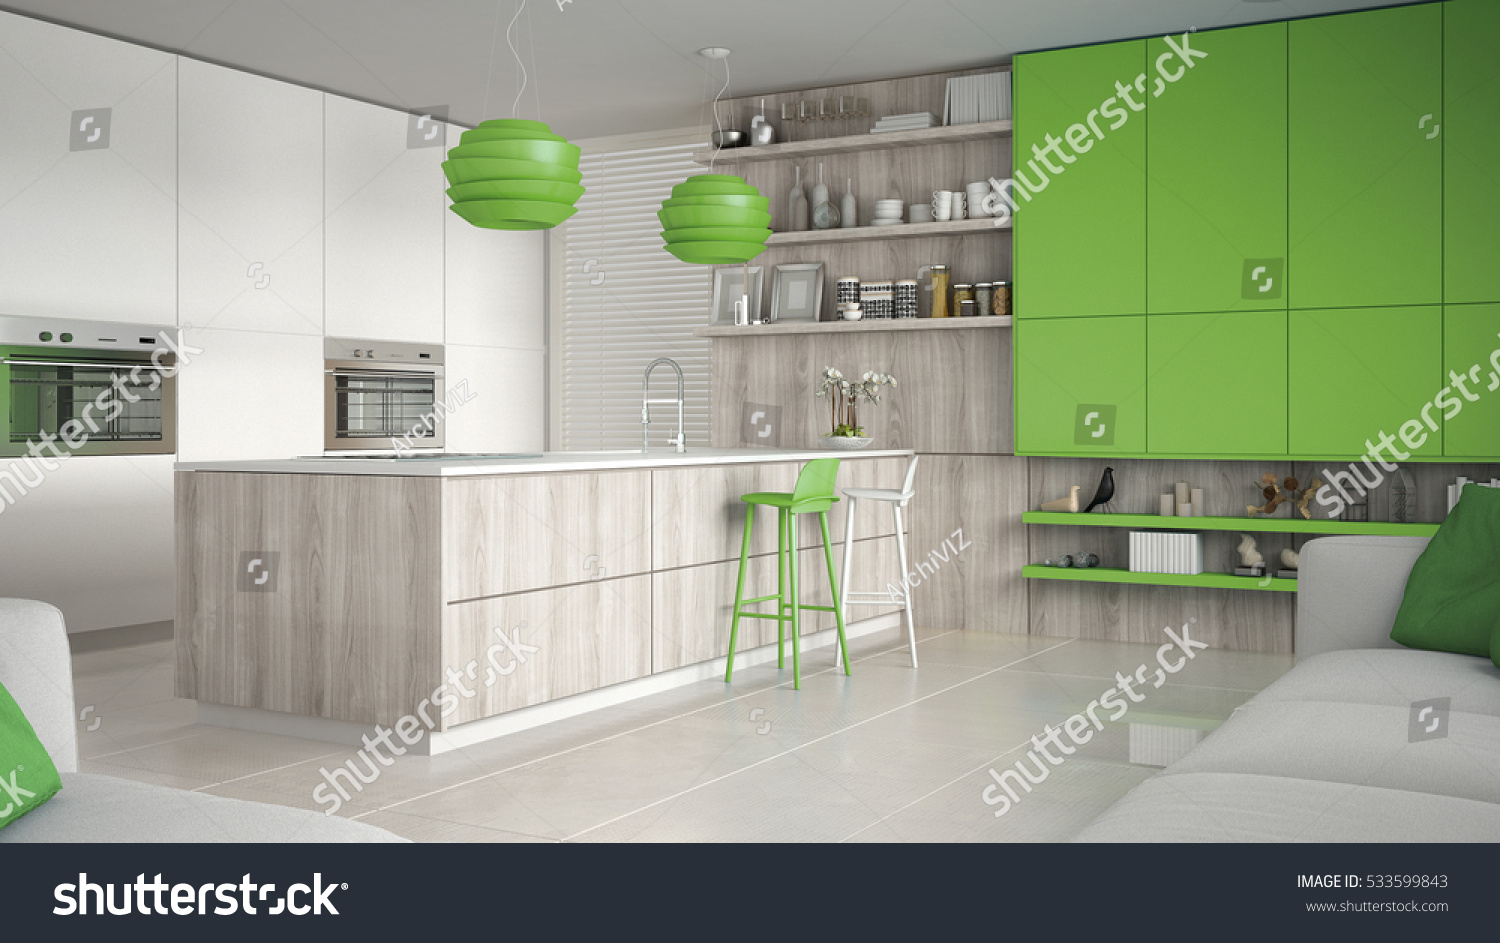 Minimalistic White Kitchen Wooden Green Details Stock Illustration 533599843 Shutterstock